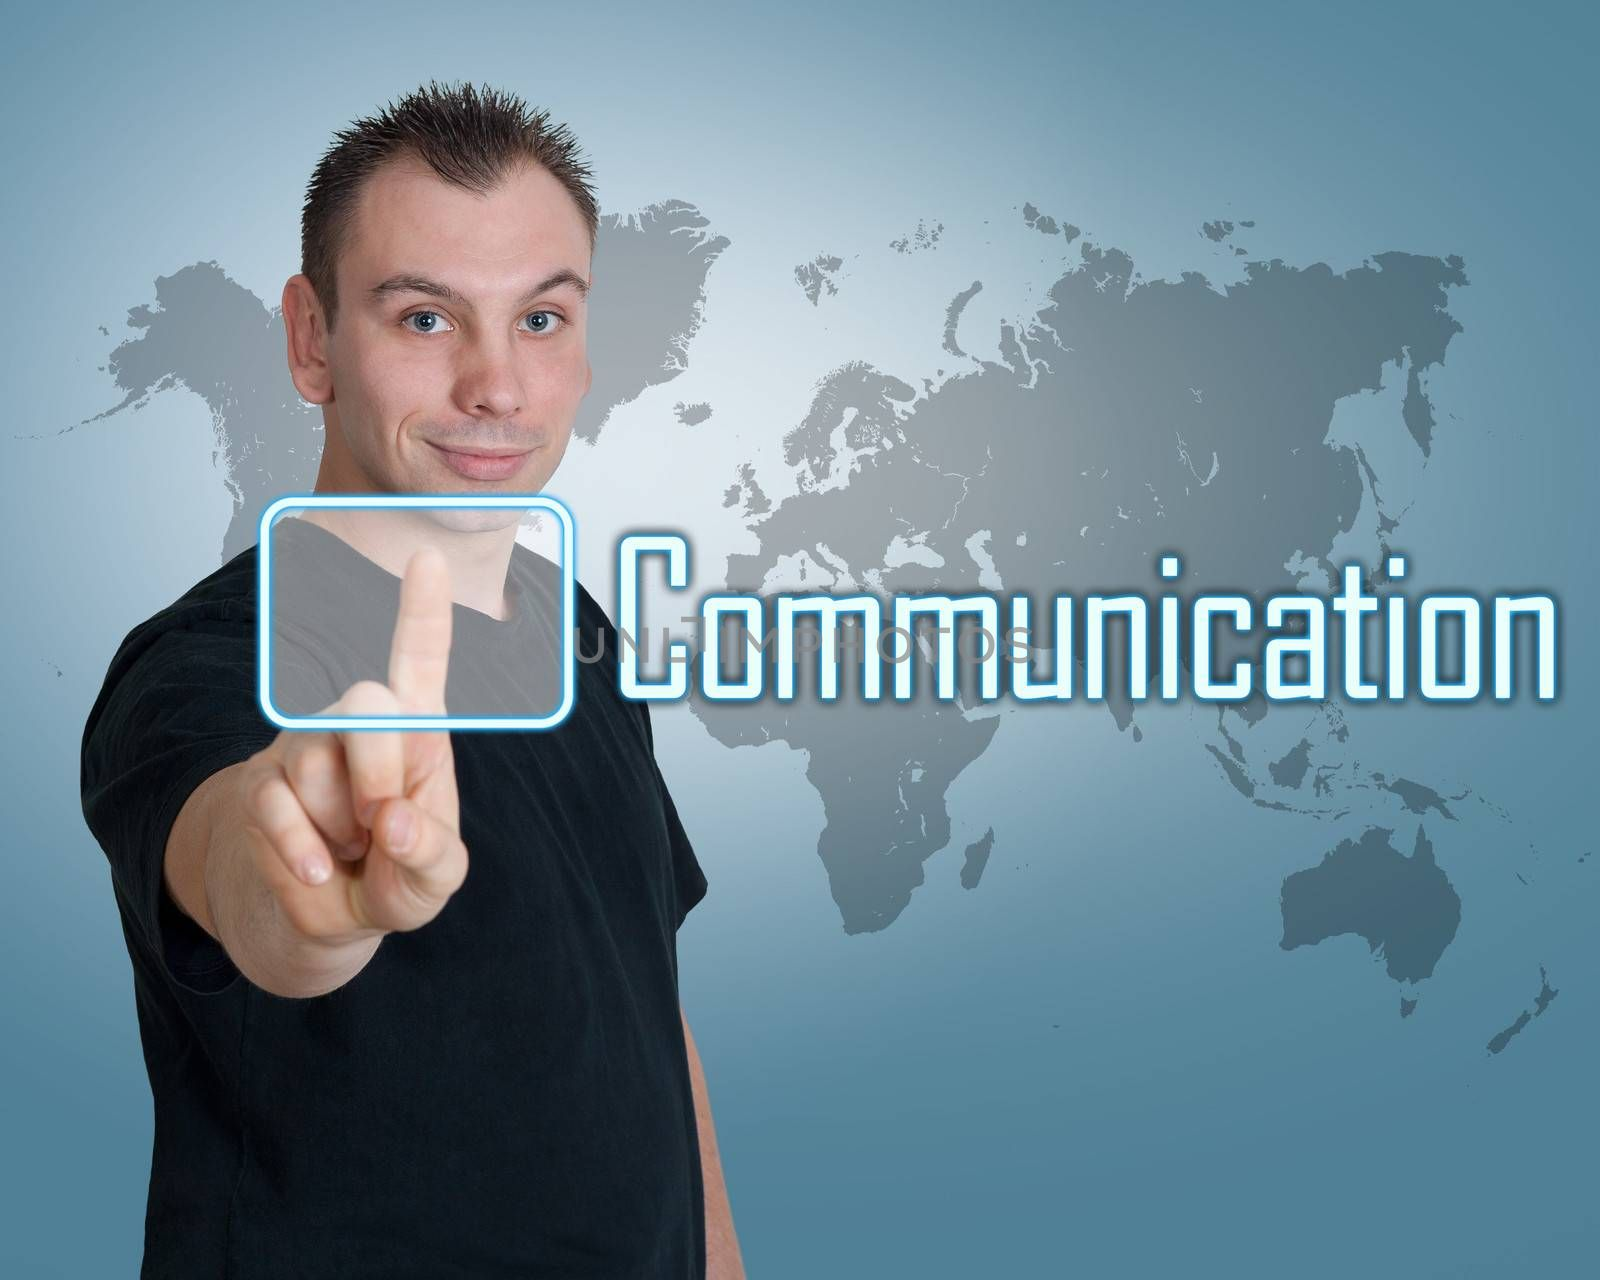 Young man press digital Communication button on interface in front of him